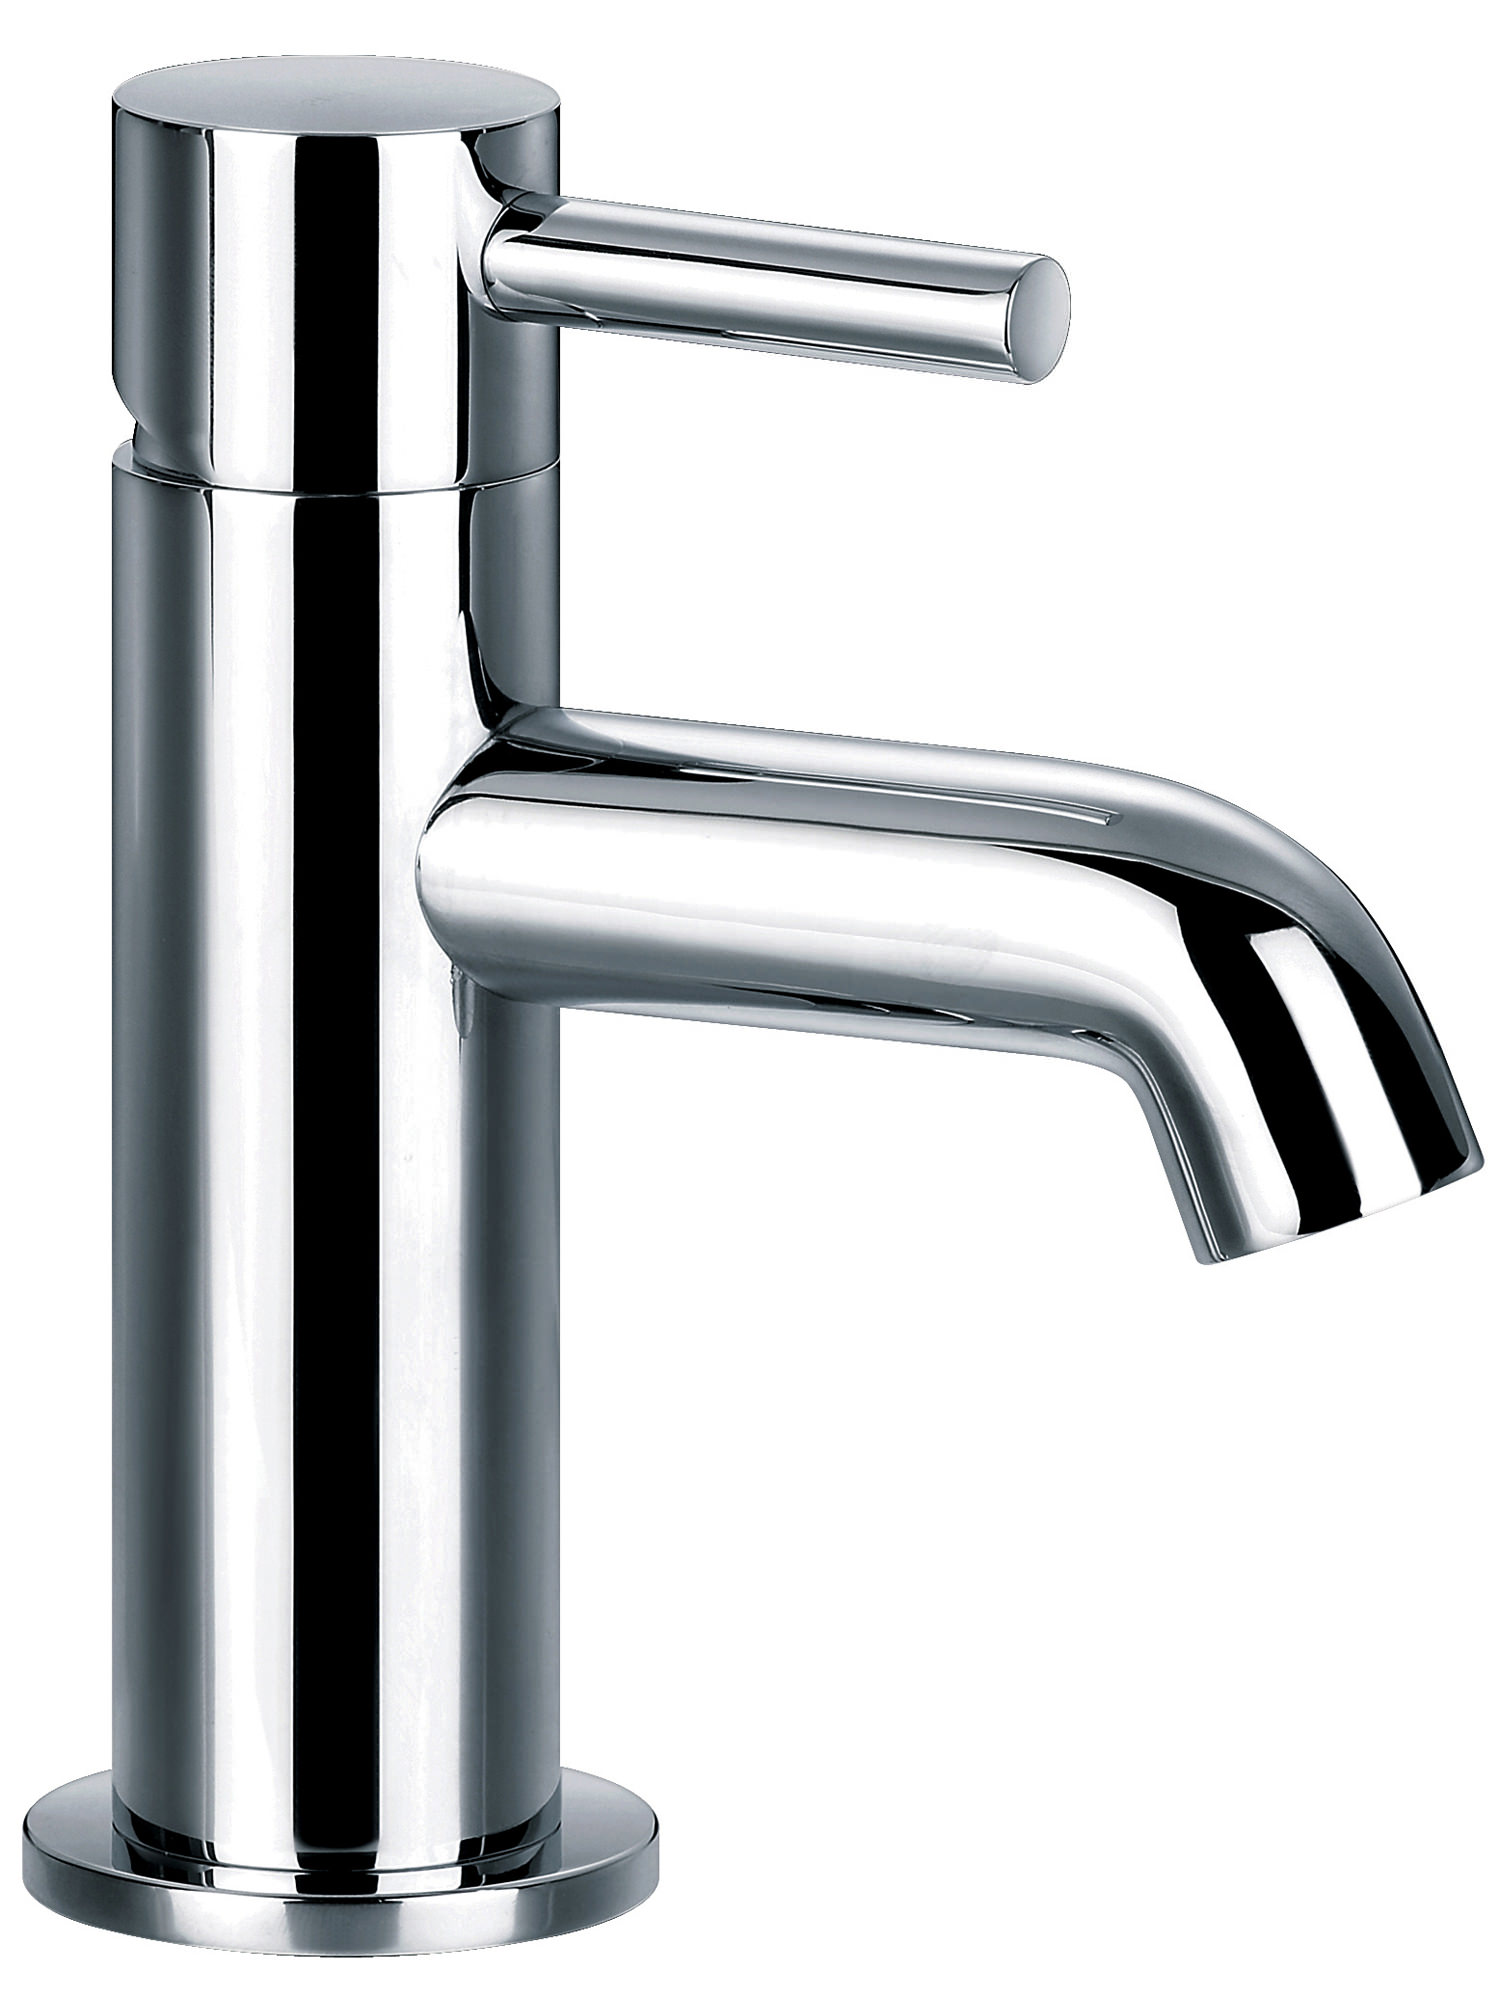 Flova Levo Mini Single Lever Basin Mixer Tap With Clicker